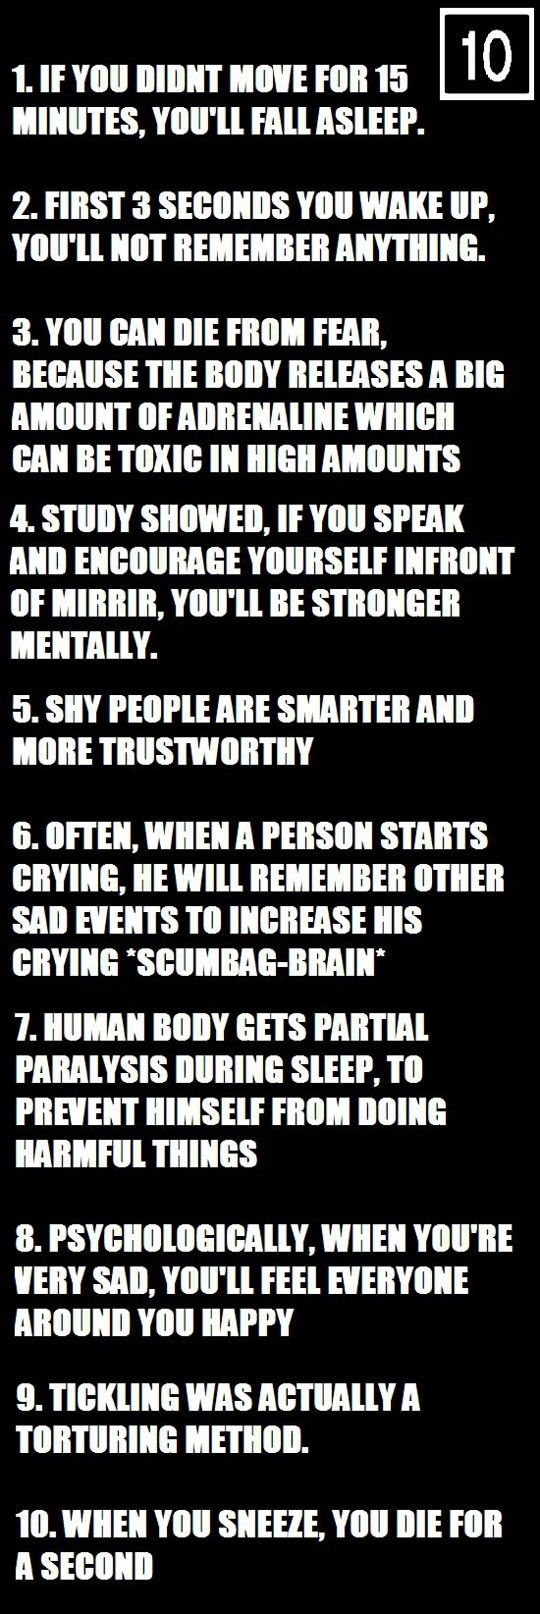 Things About Your Body